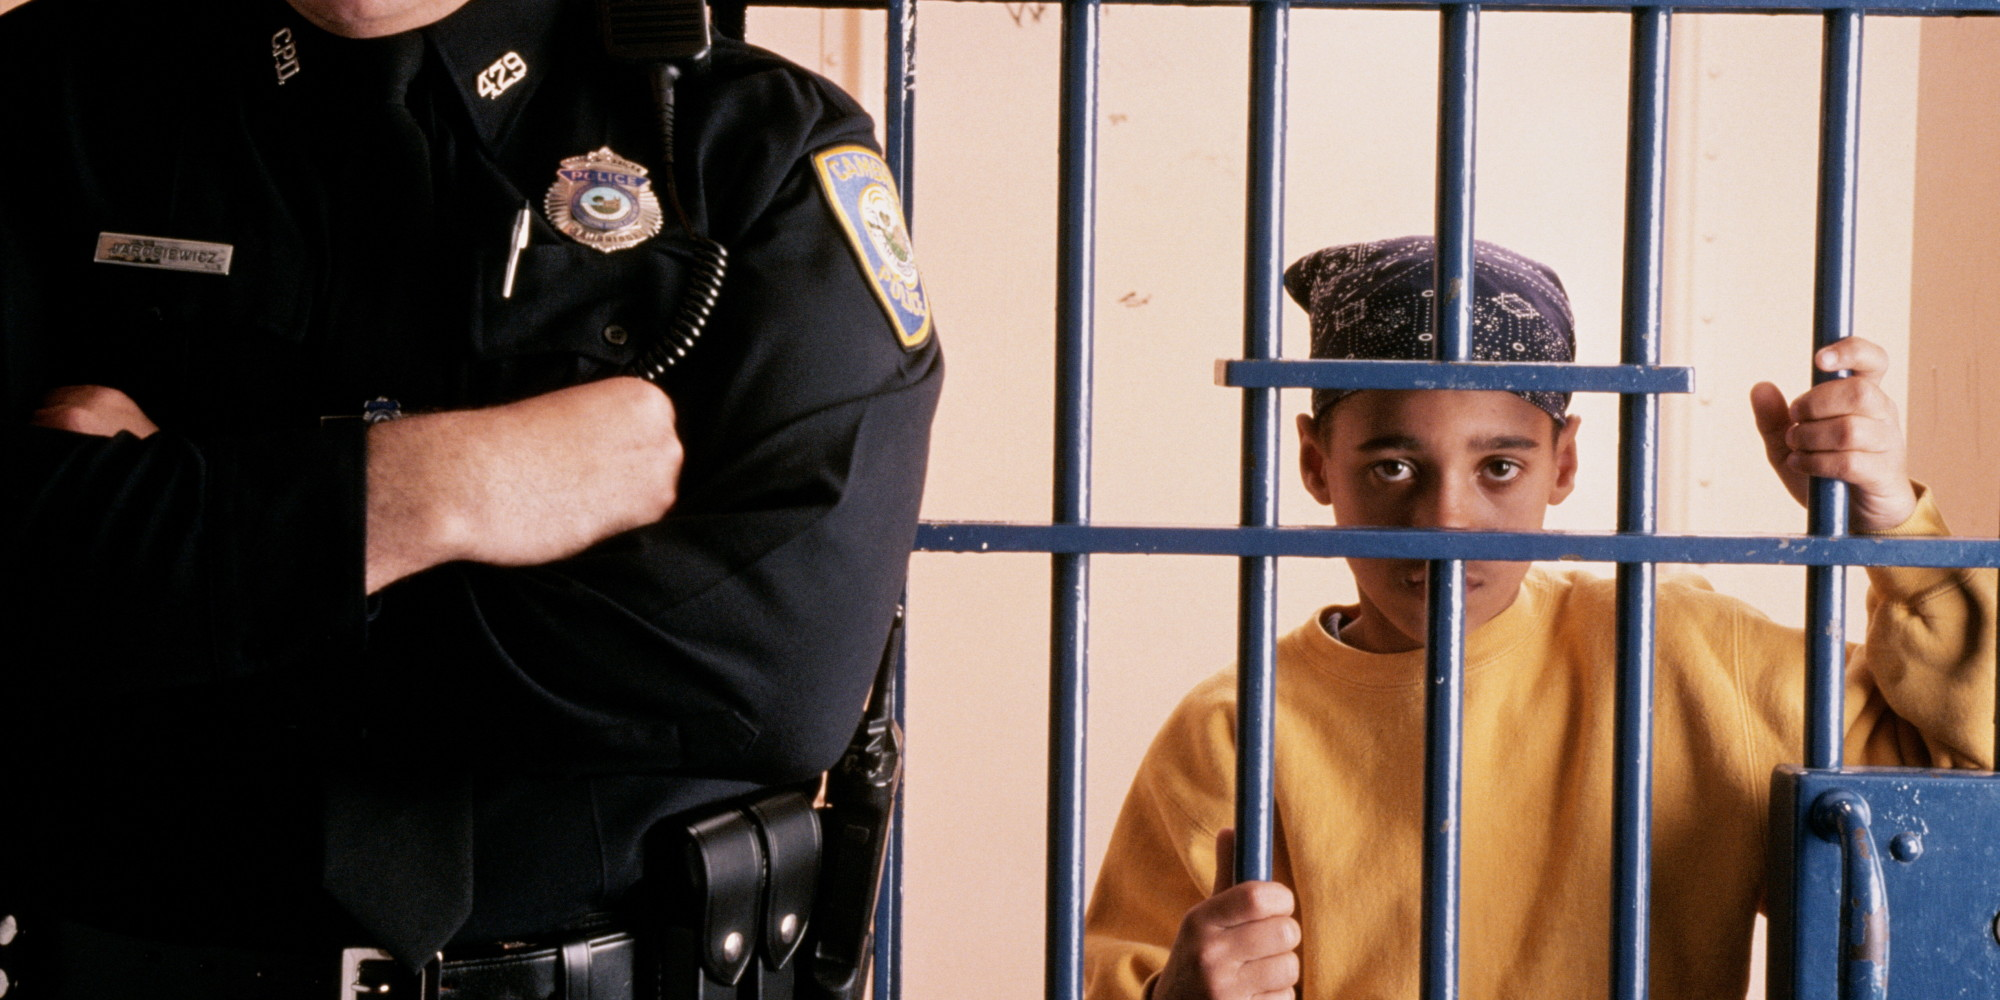 juvenile offenders Reduced sentences and community-based treatments are more effective for most  juvenile offenders than locking them in correctional facilities,.